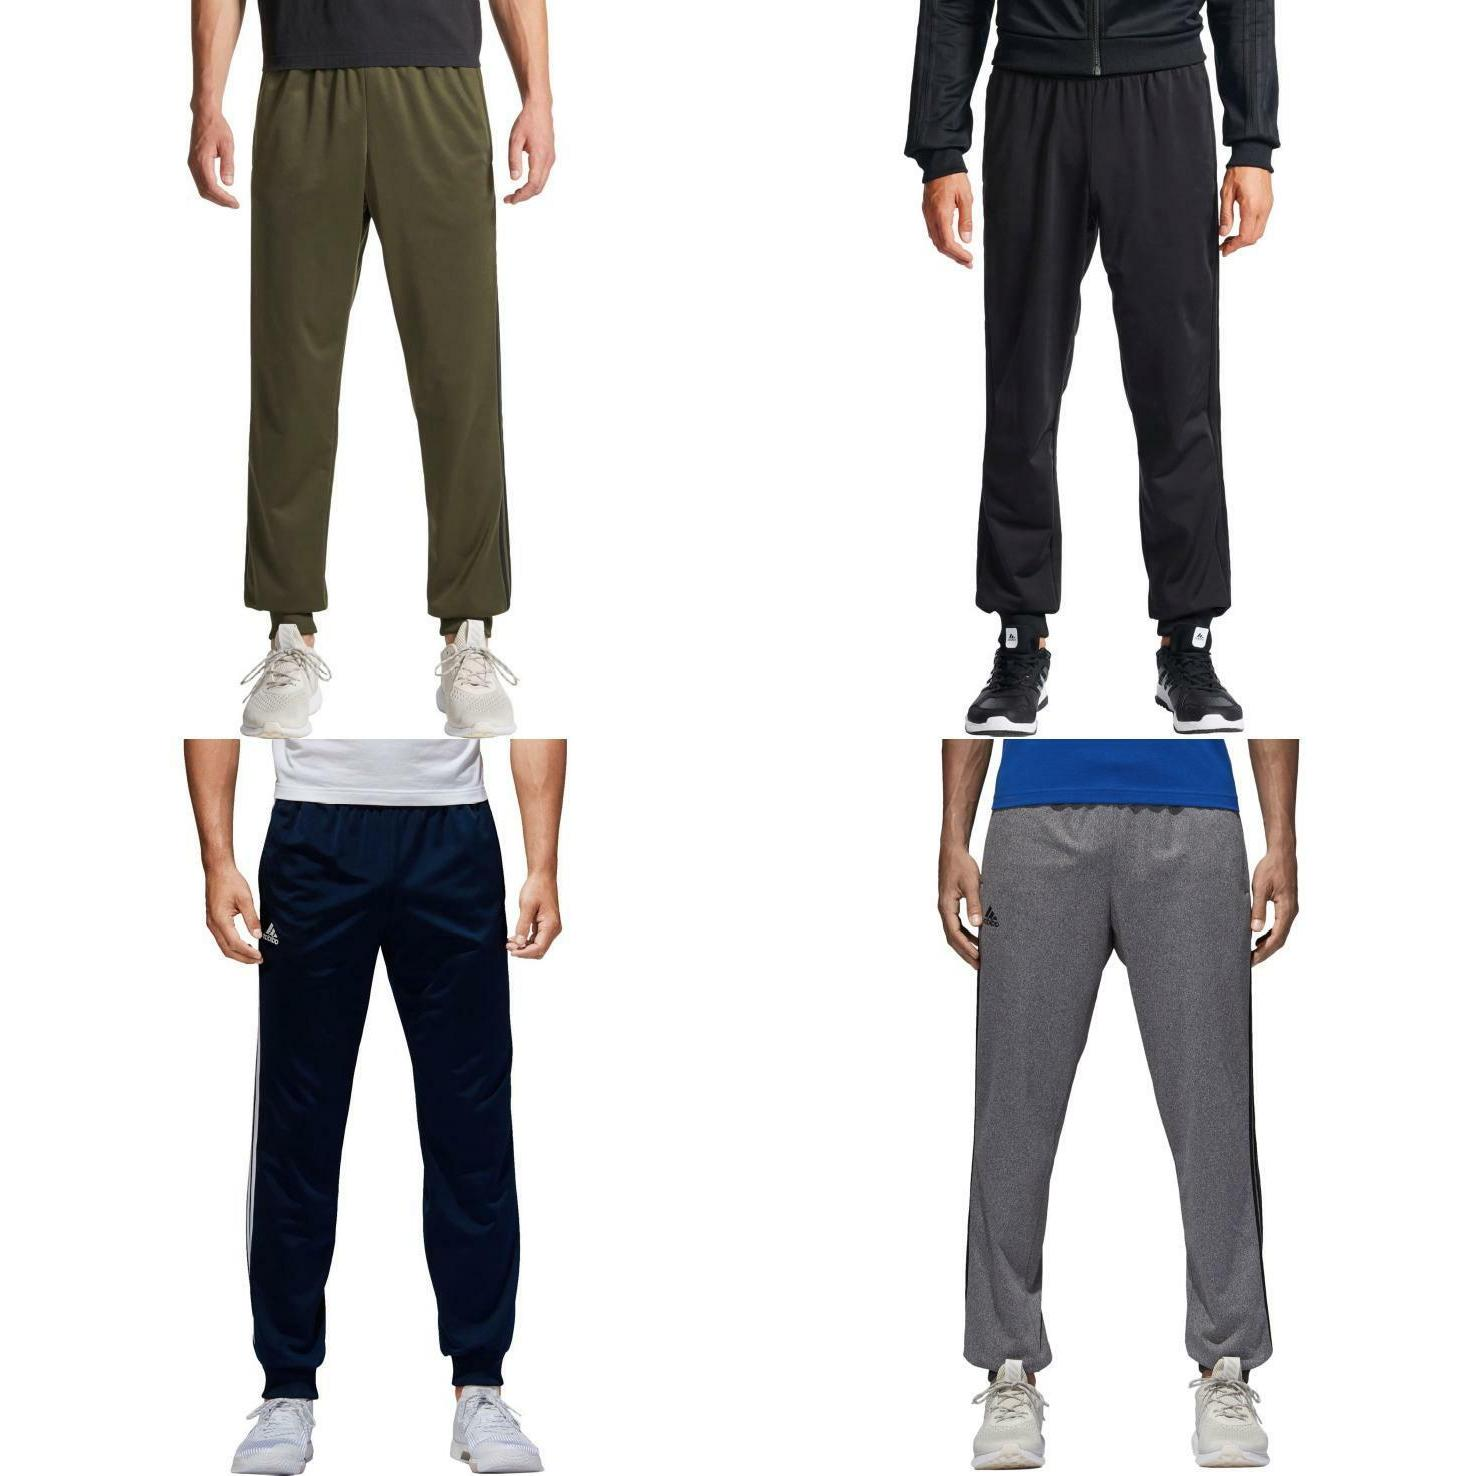 regular tapered pants mens tricot essentials athletic